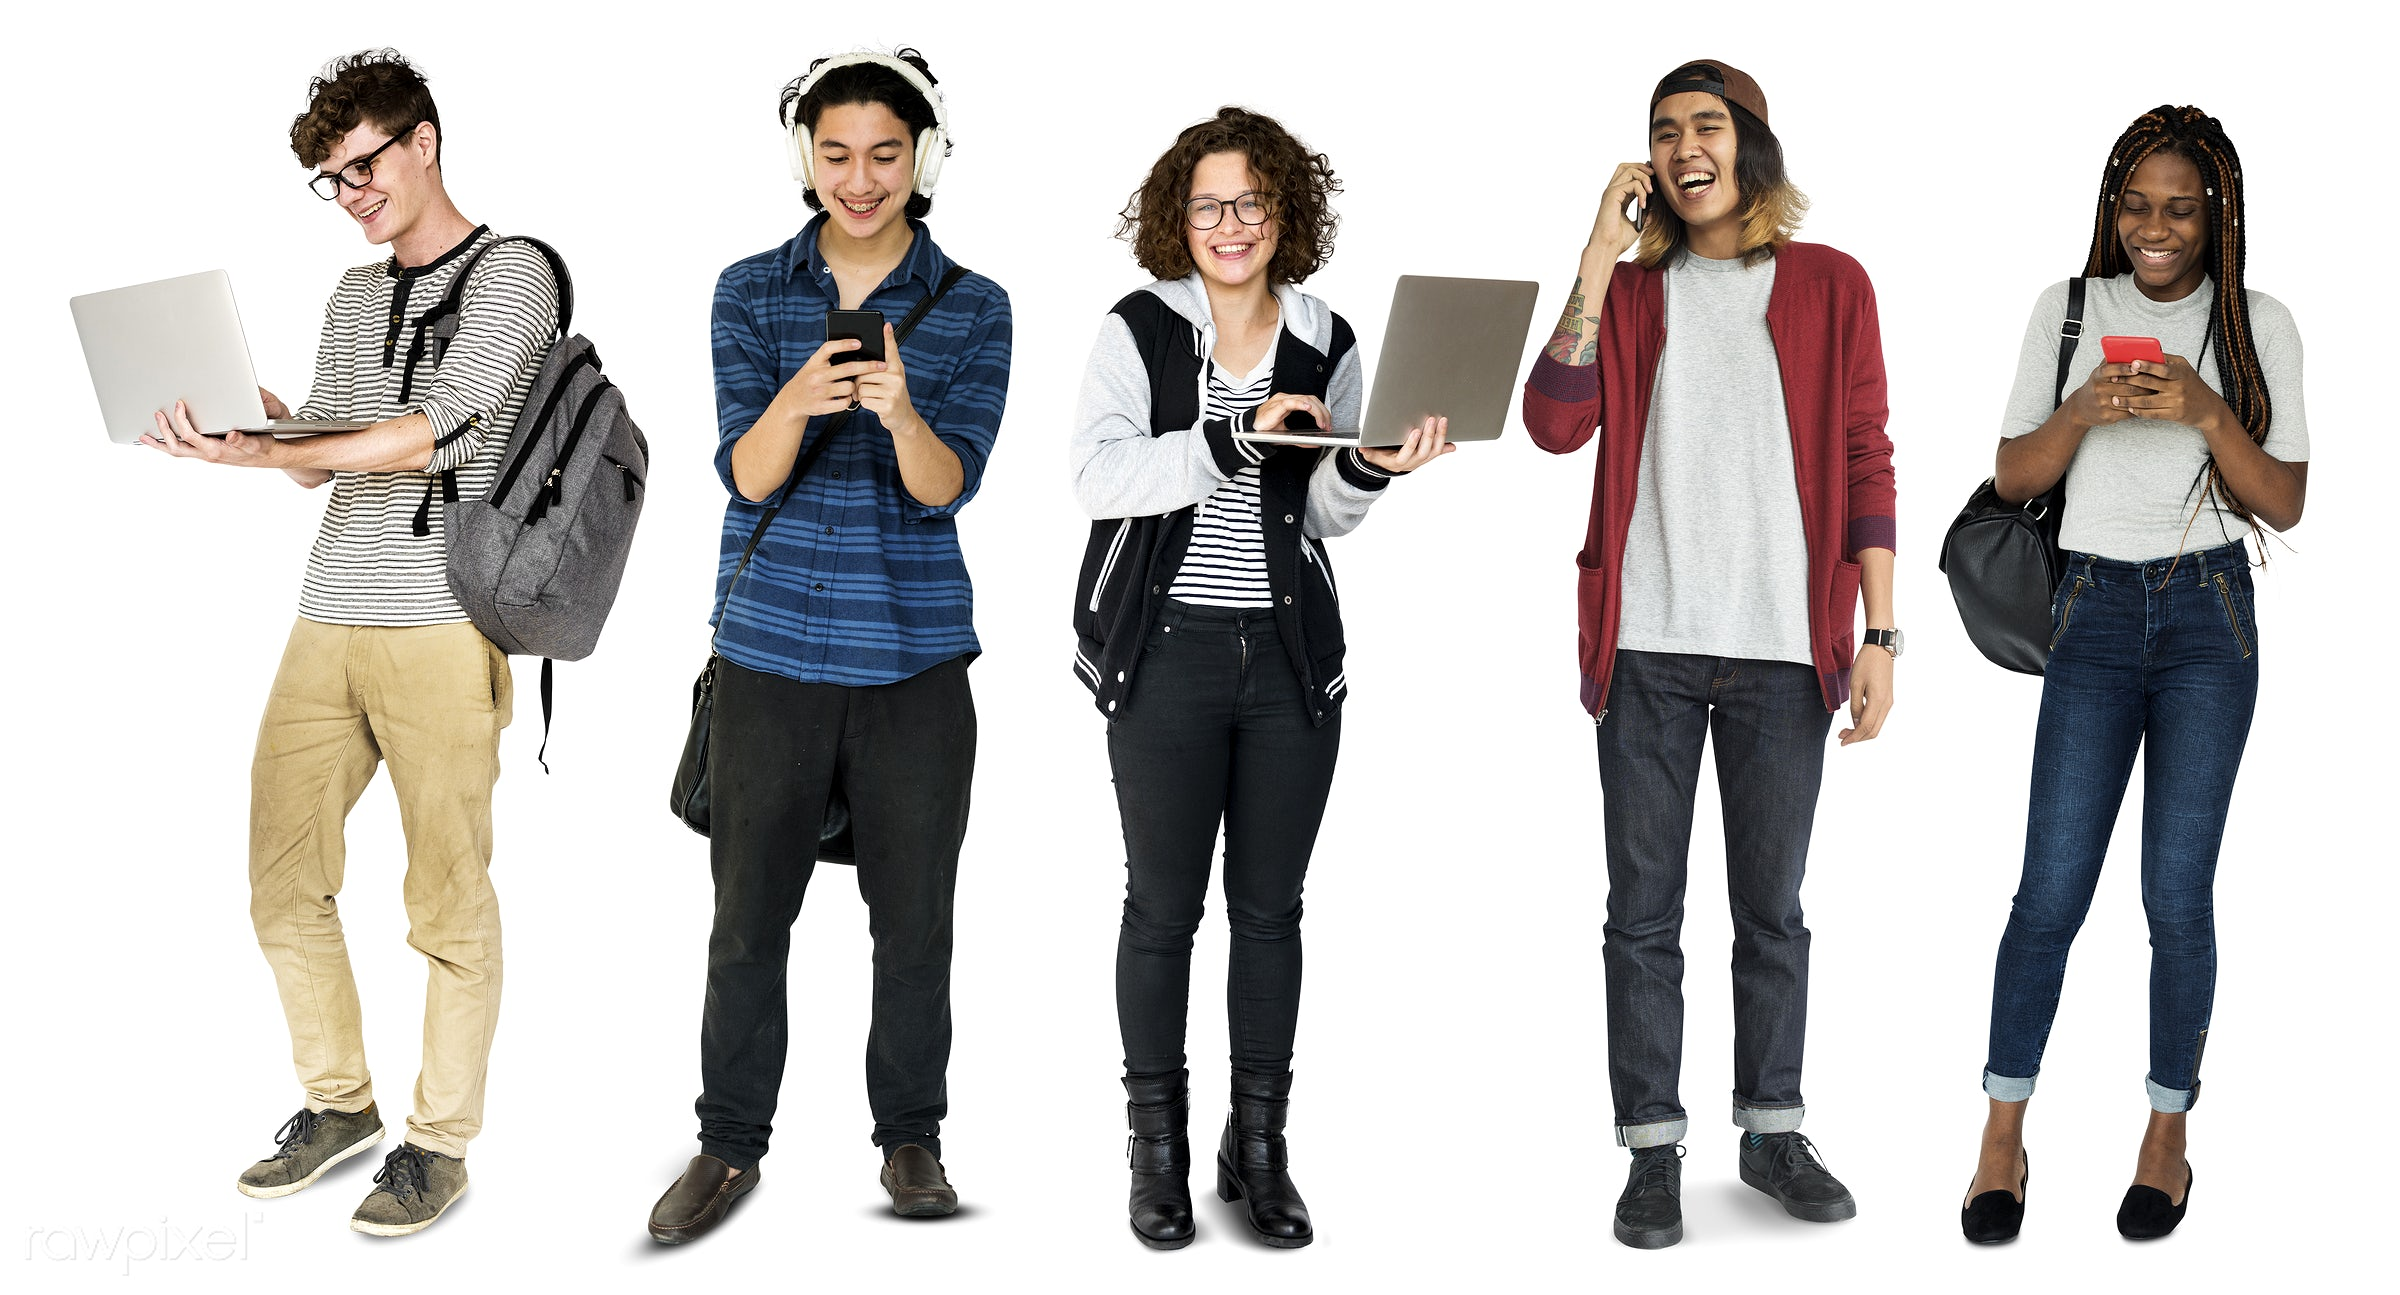 expression, studio, person, phone, technology, diverse, people, asian, caucasian, young adult, social, woman, lifestyle,...